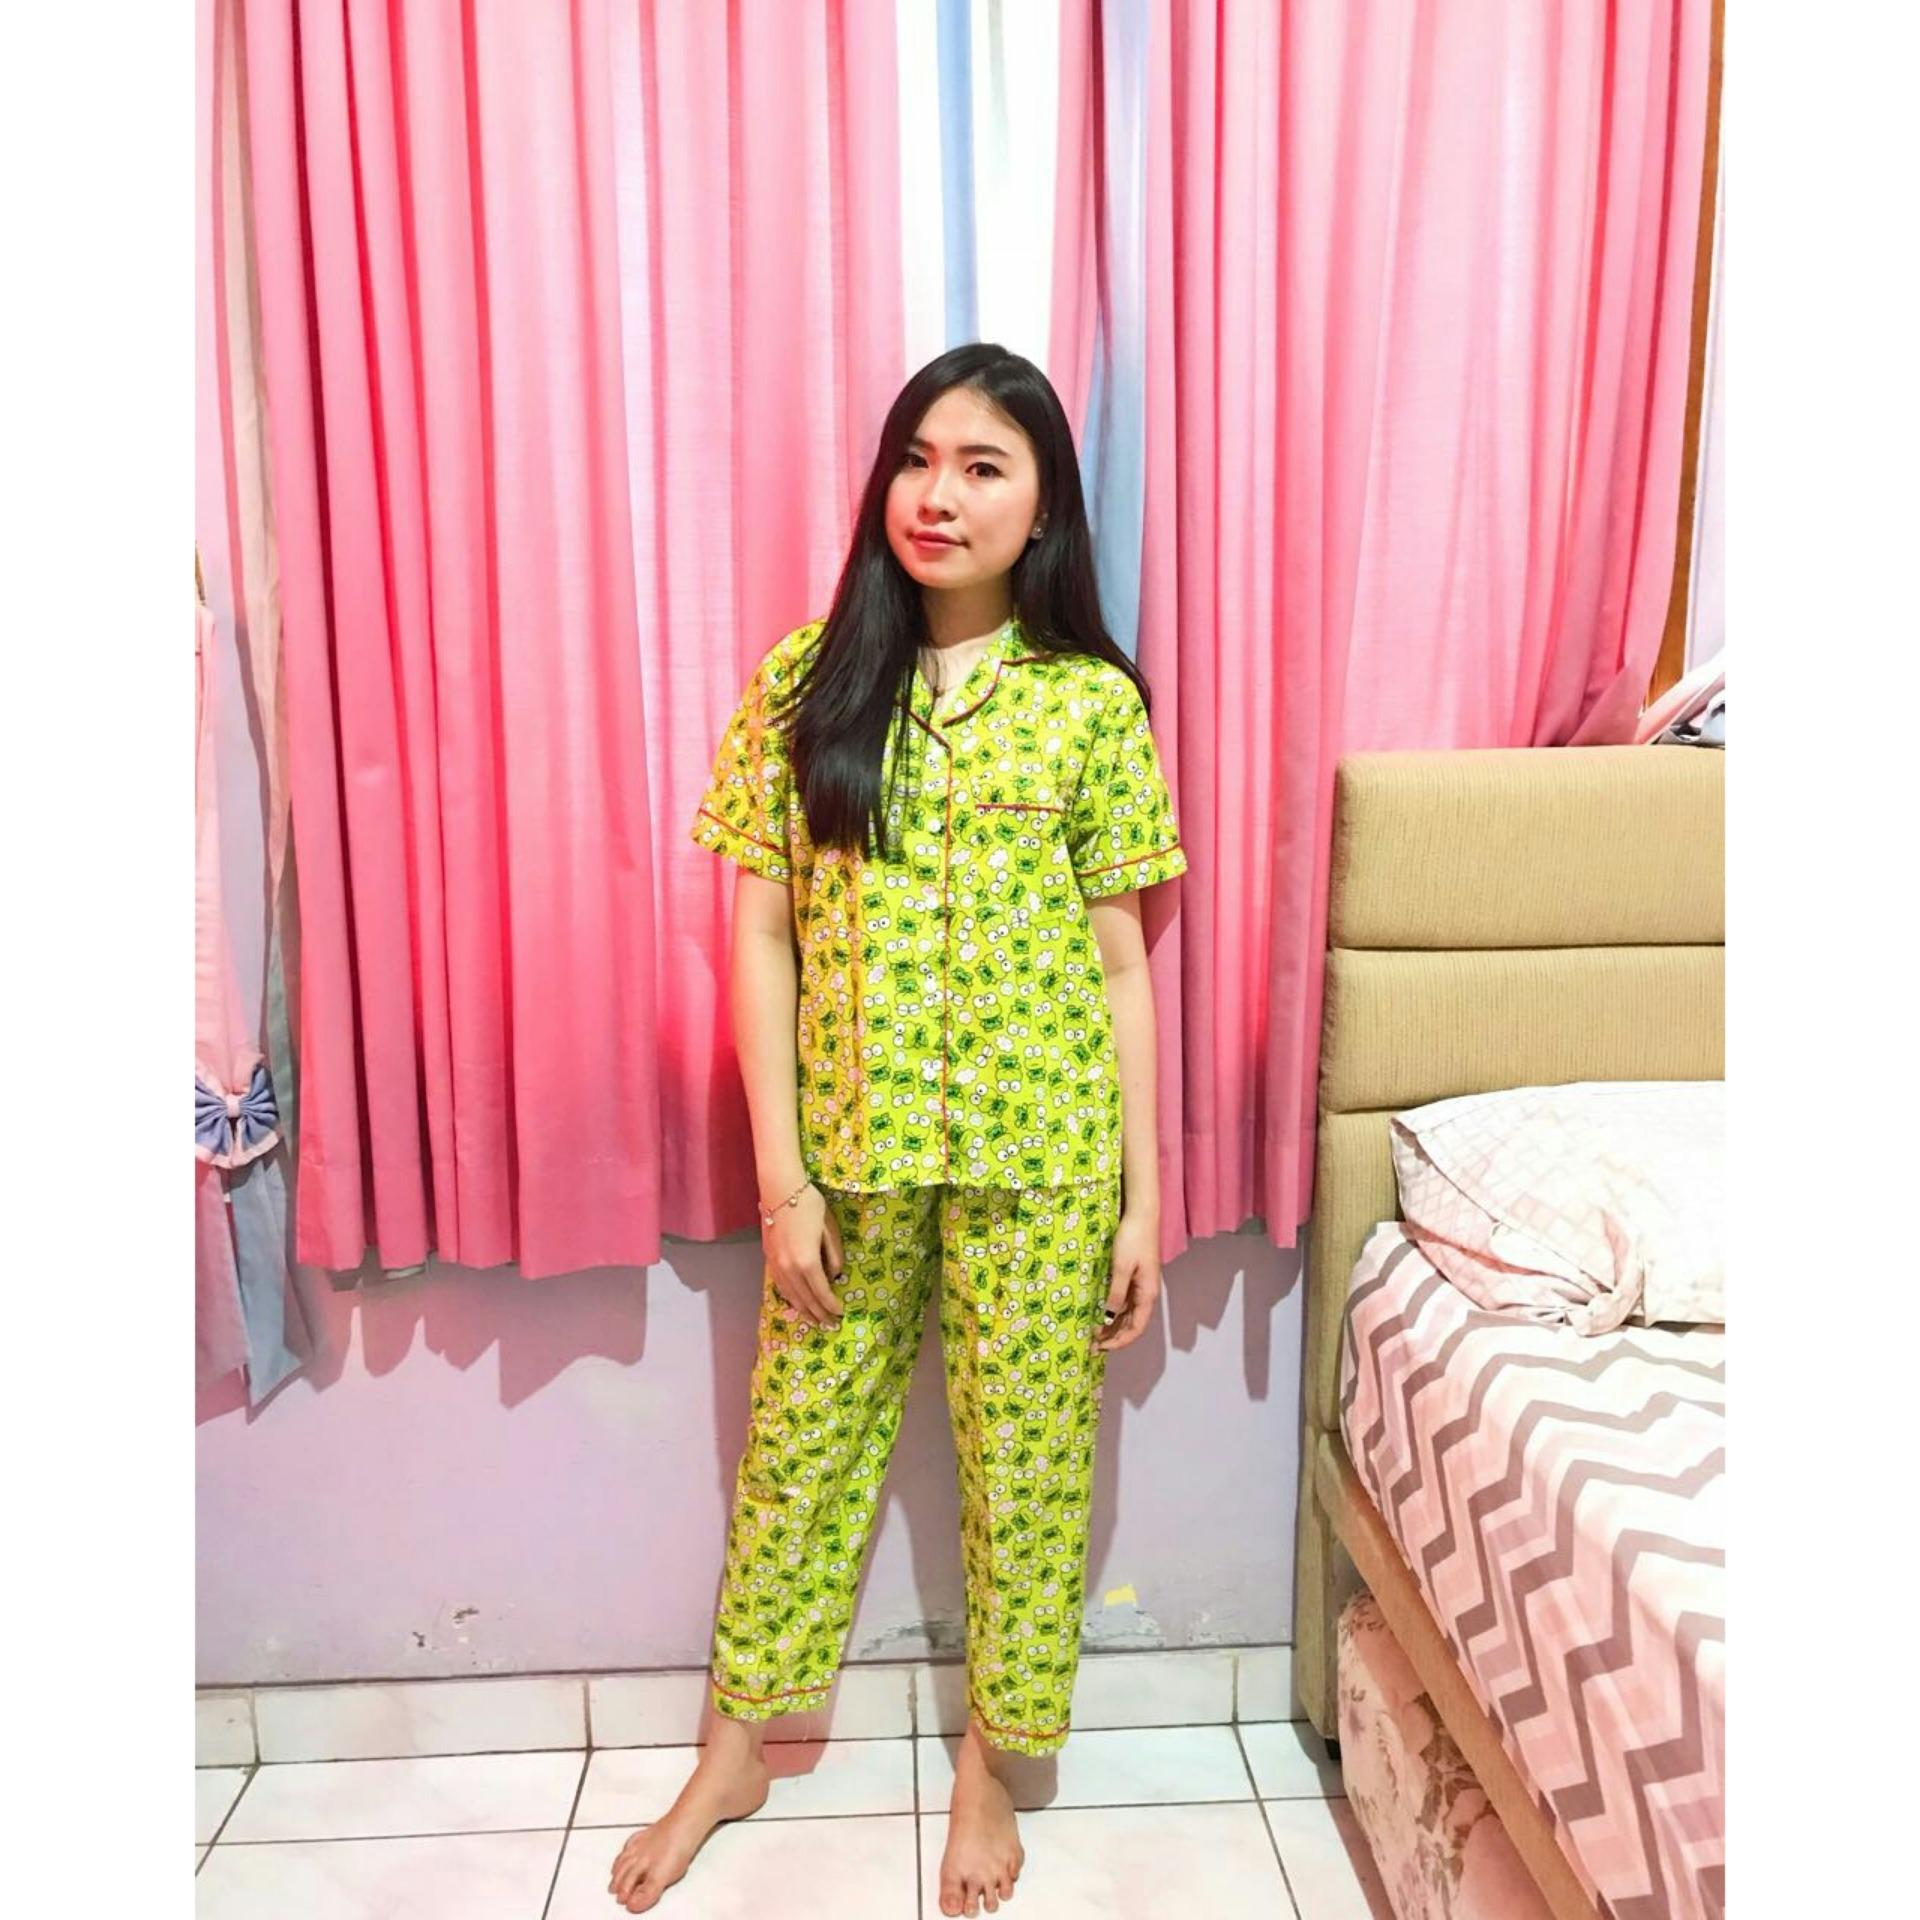 Harga Media Fashion Shop Baju Tidur Wanita Piyama Longpants Motif Little Keropi Lembut Dingin Bagus Laris Murah Bahan Katun Import All Size Ld 104 106 Best Seller Media Fashion Shop